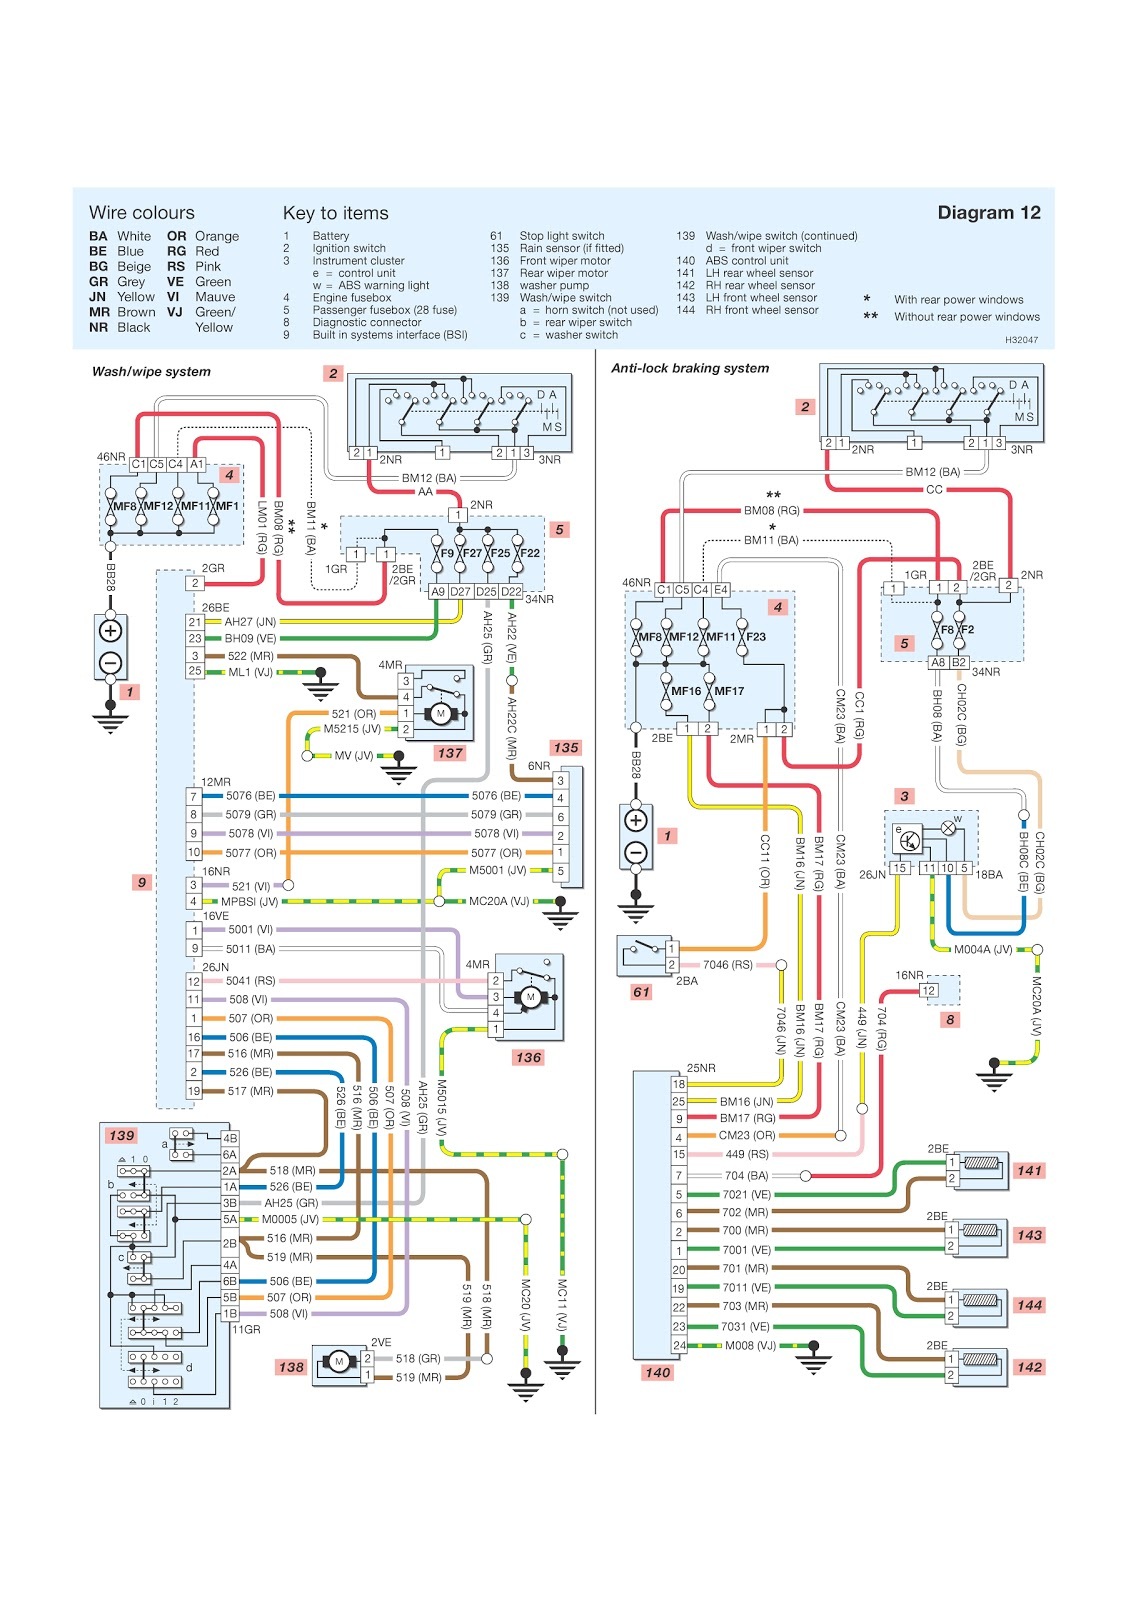 Peugeot 206 Wiring Diagrams Washwipe system, ABS | Schematic Wiring Diagrams Solutions